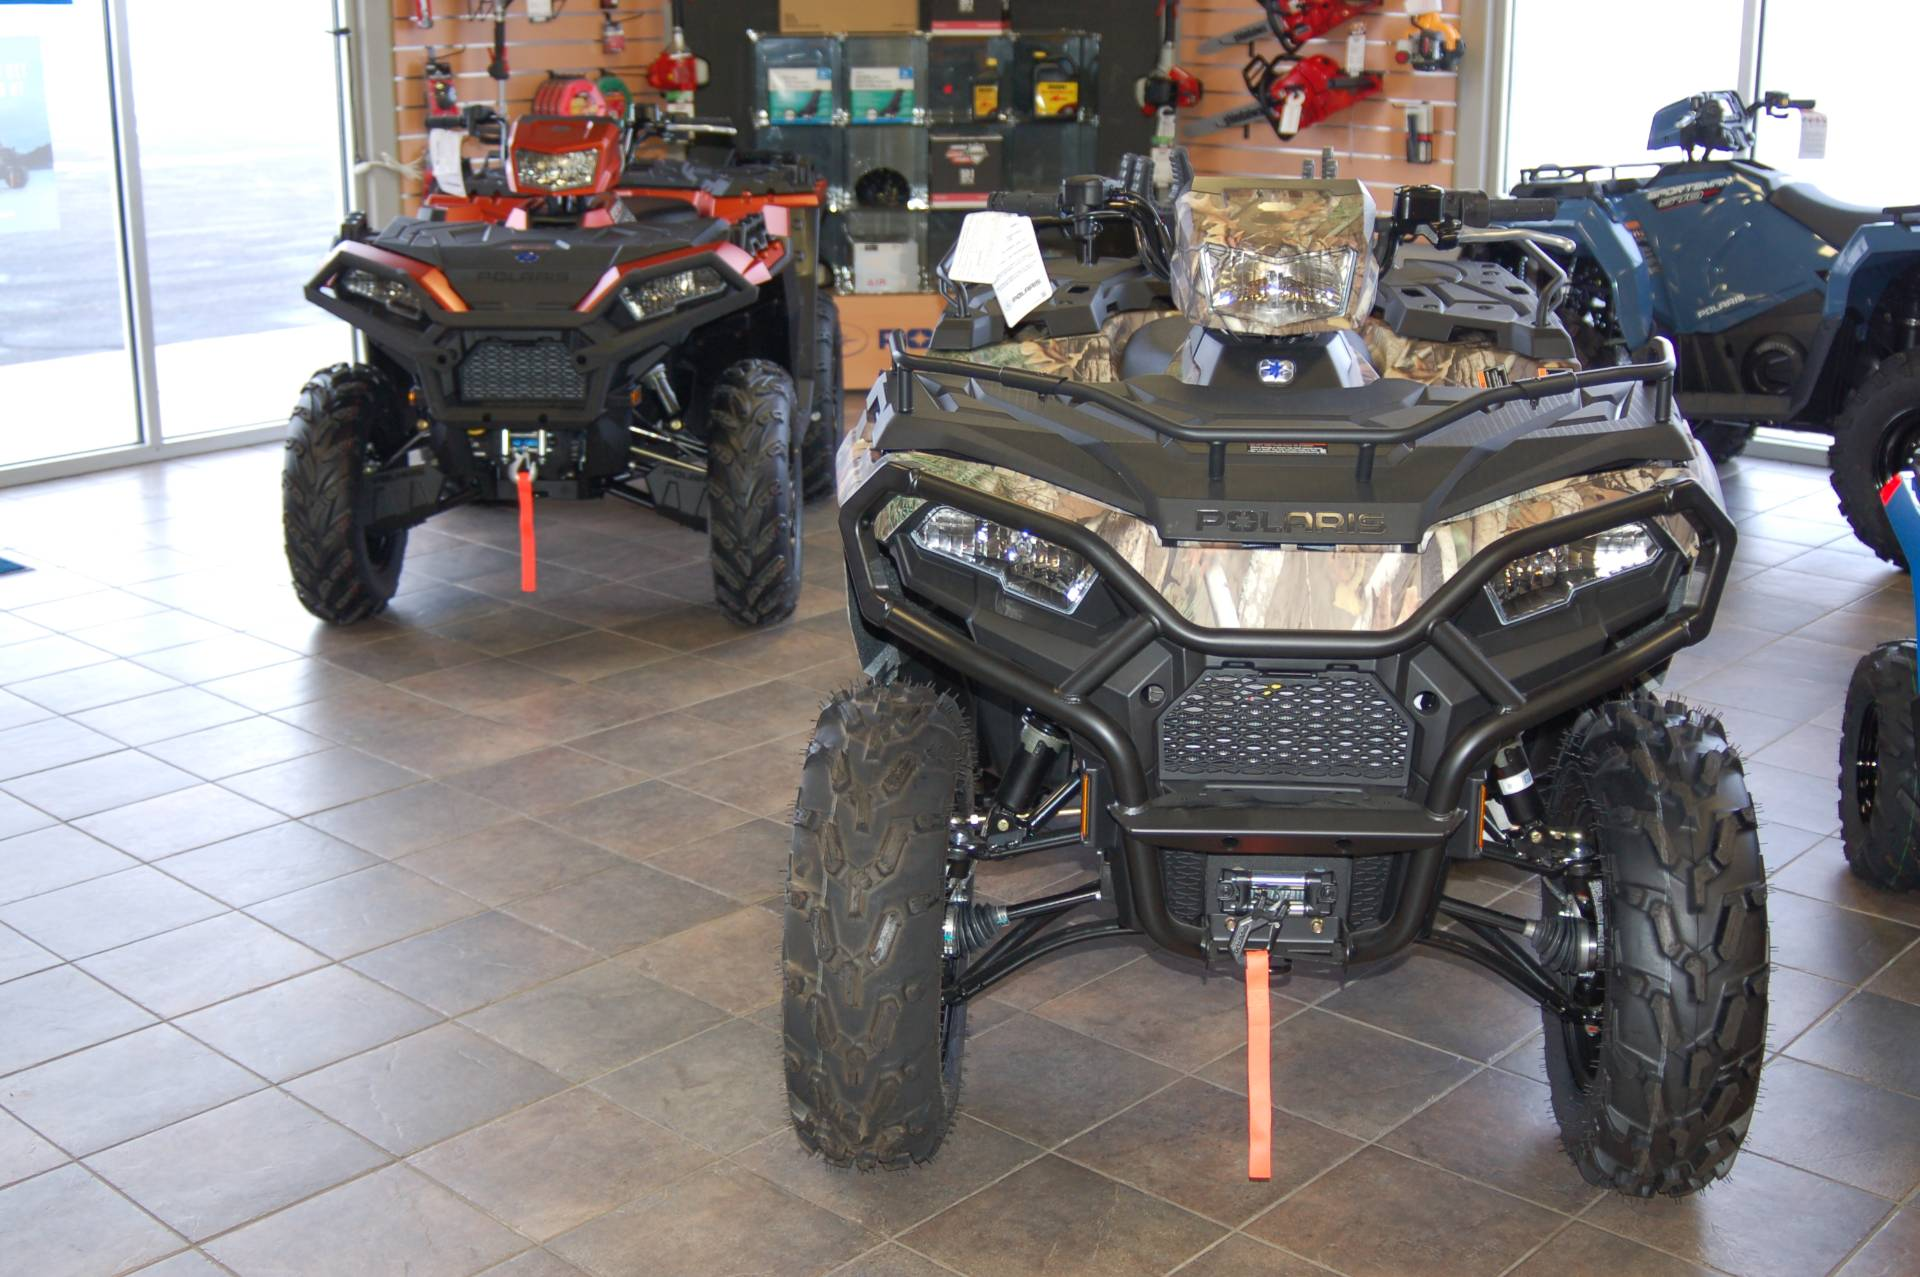 2021 Polaris Sportsman 570 Hunt Edition in Sturgeon Bay, Wisconsin - Photo 6